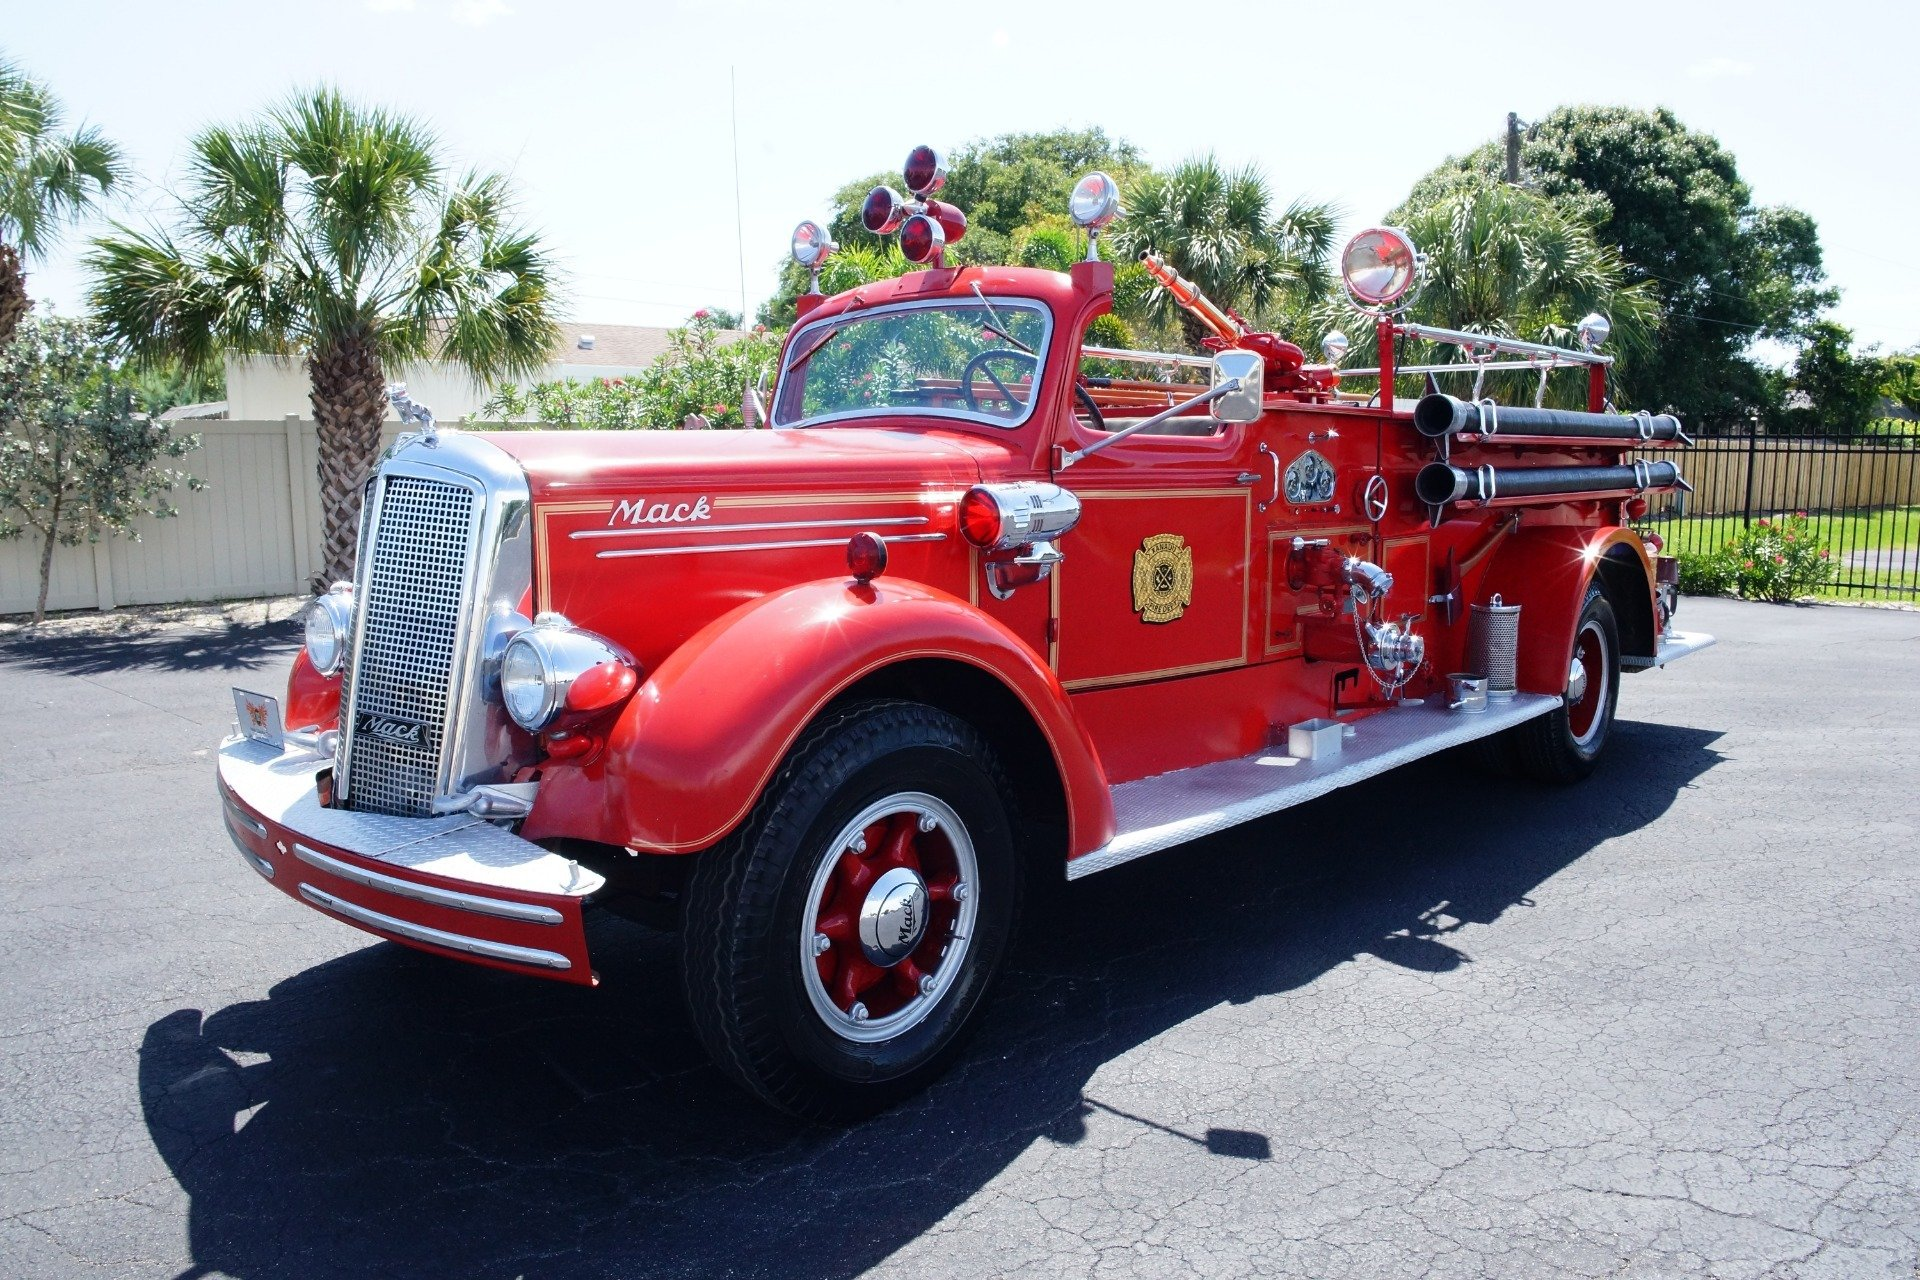 hight resolution of fire engine siren wiring diagram wiring diagram schematic1943 mack model 505 fire truck ideal classic cars